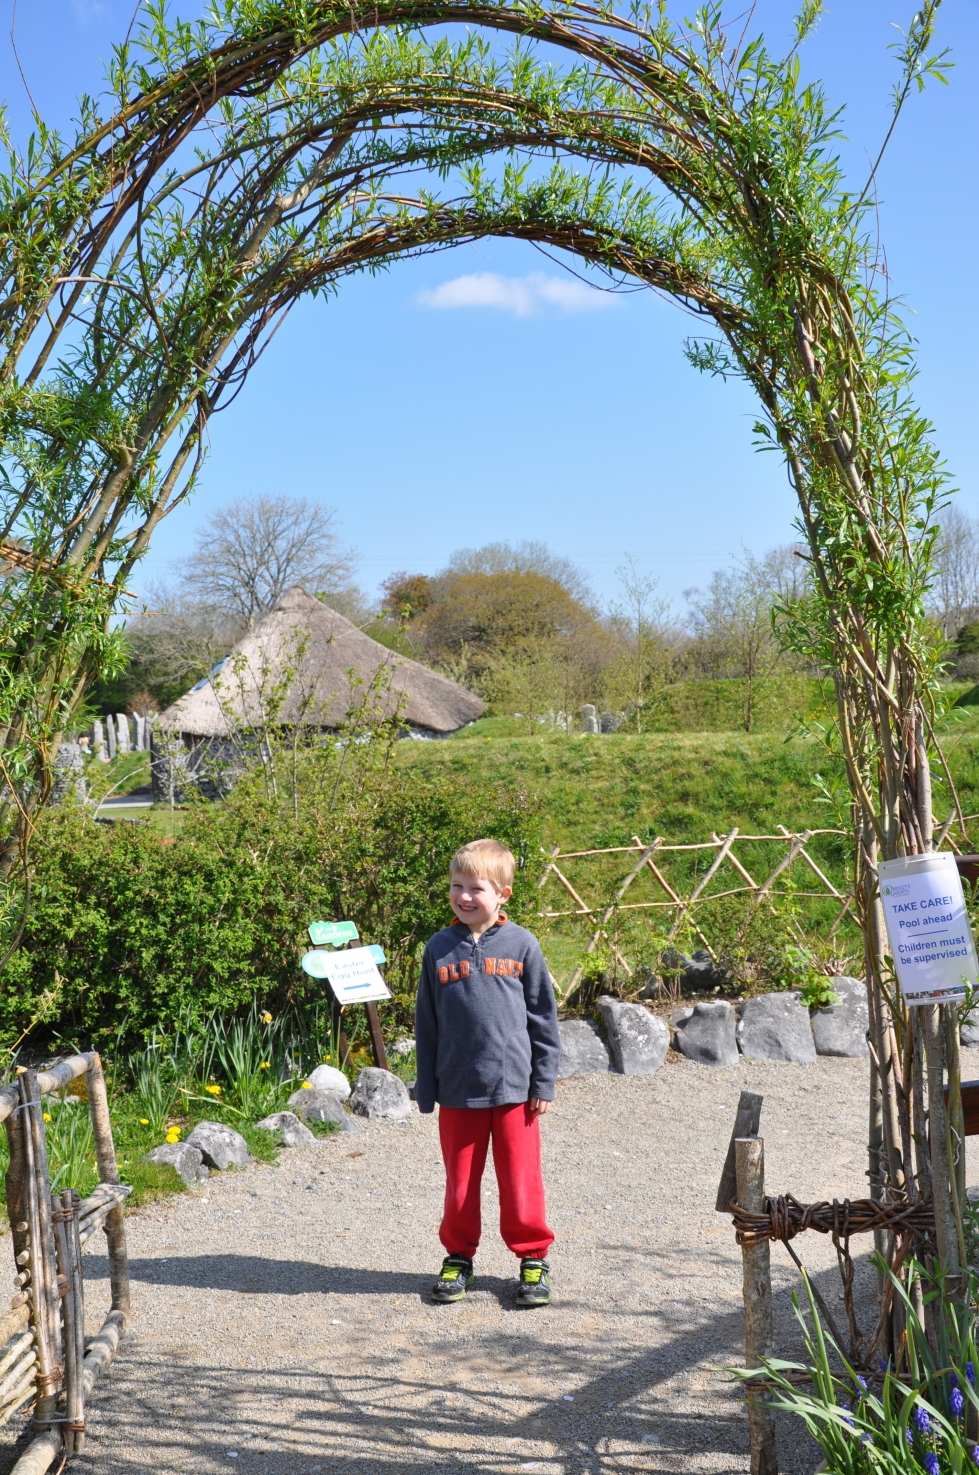 At the entrance to Brigit's Garden